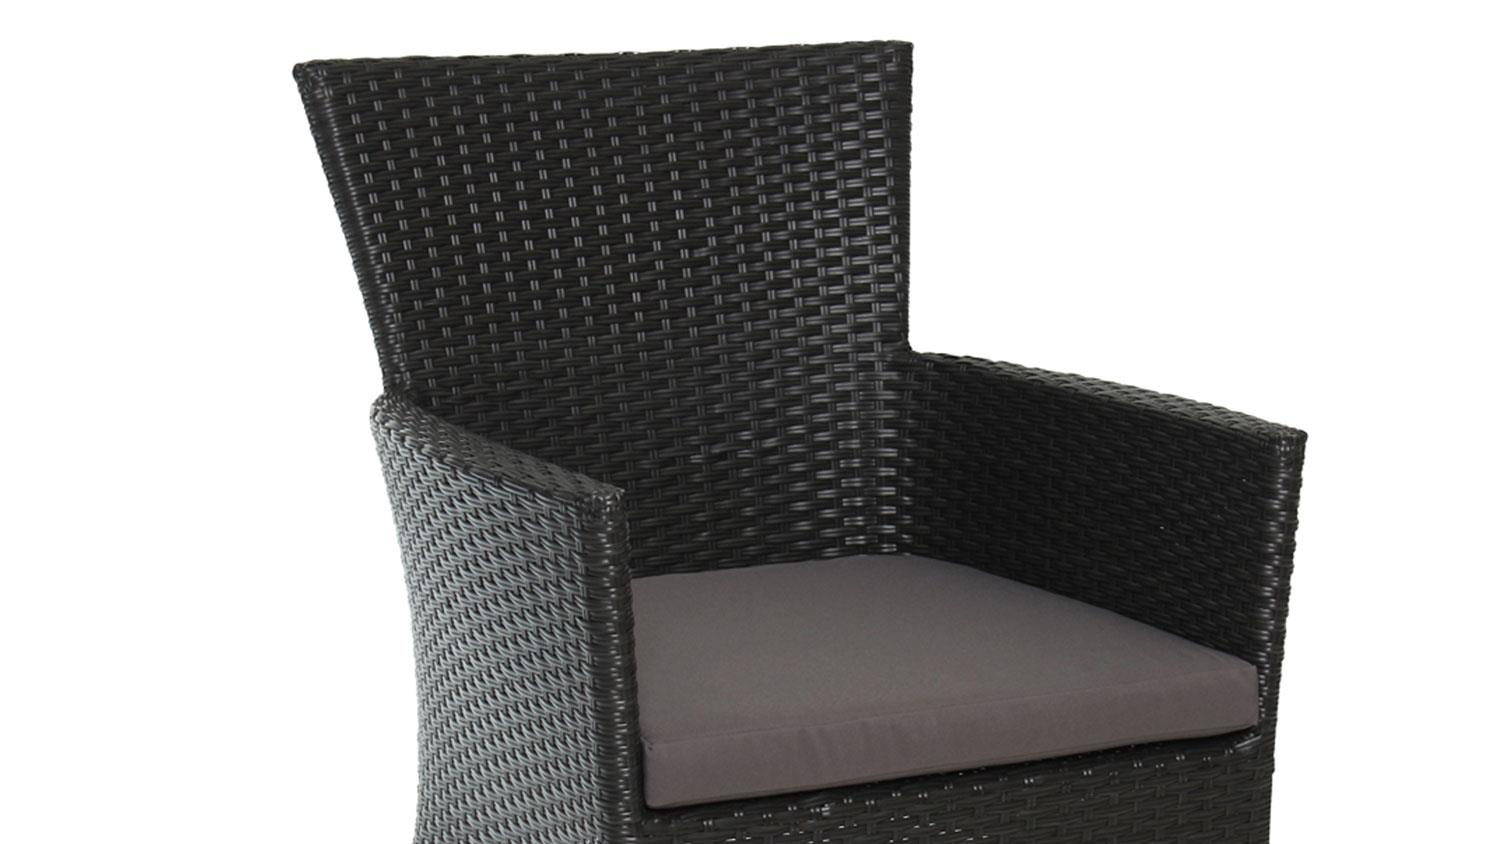 gartenstuhl polyrattan sessel mit sitzkissen in schwarz. Black Bedroom Furniture Sets. Home Design Ideas